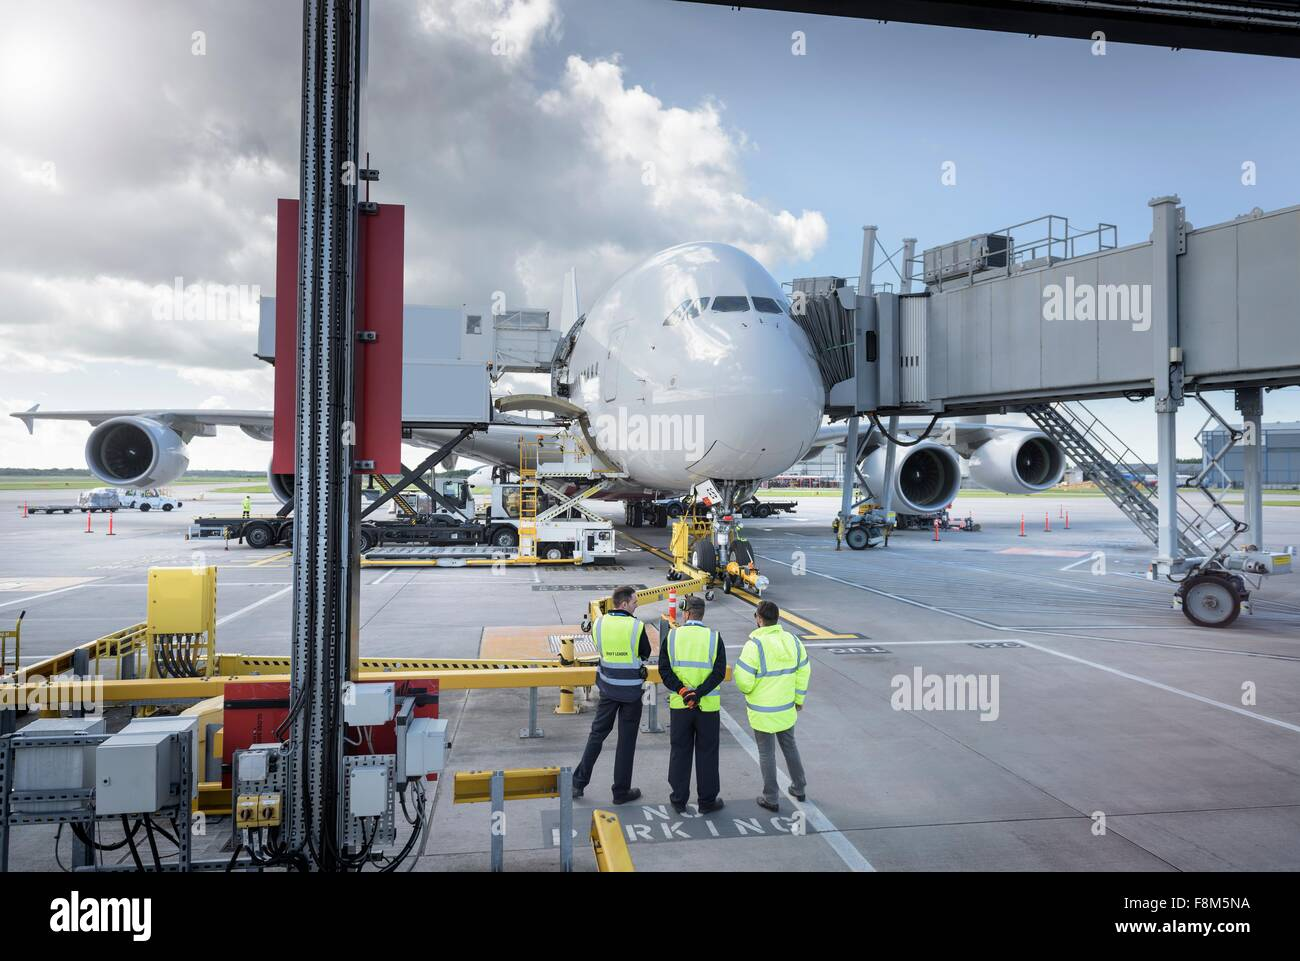 Ground crew inspecting A380 aircraft on stand in airport - Stock Image